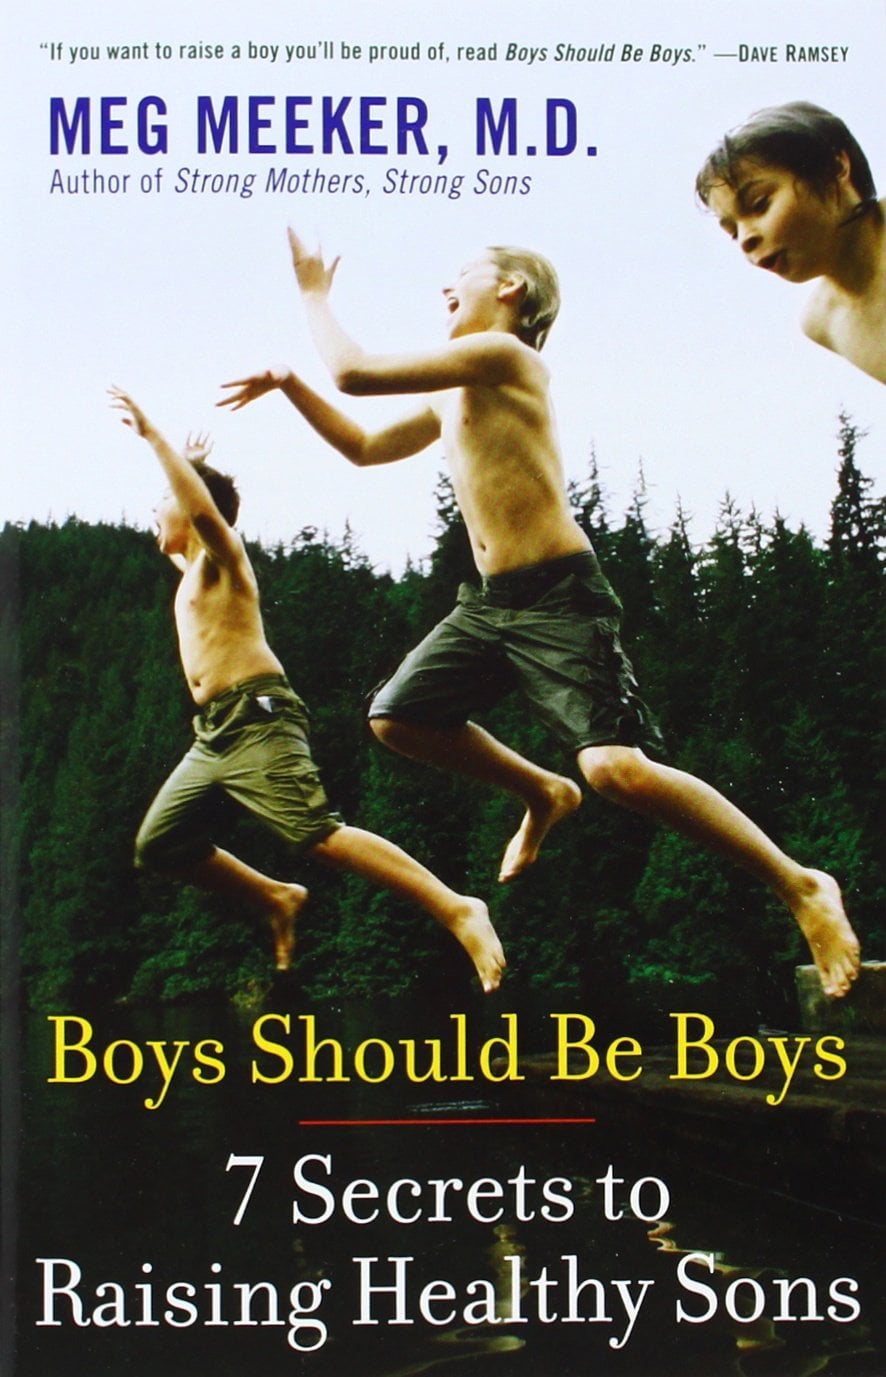 Boys Should Be Boys 7 Secrets to Raising Healthy Sons